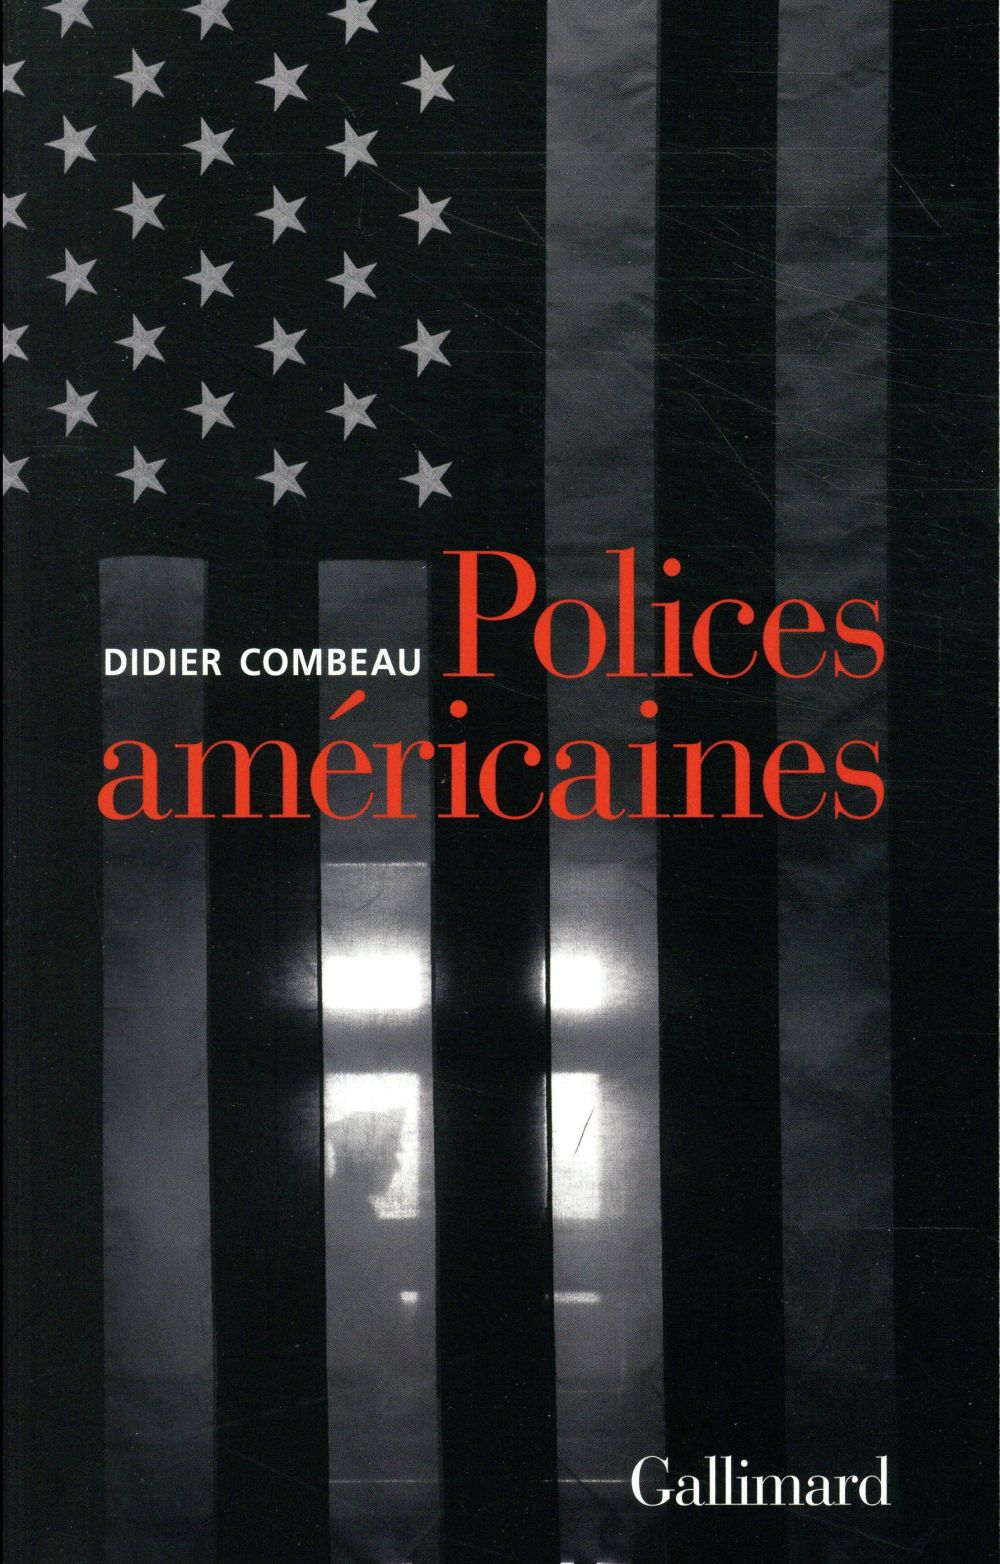 POLICES AMERICAINES